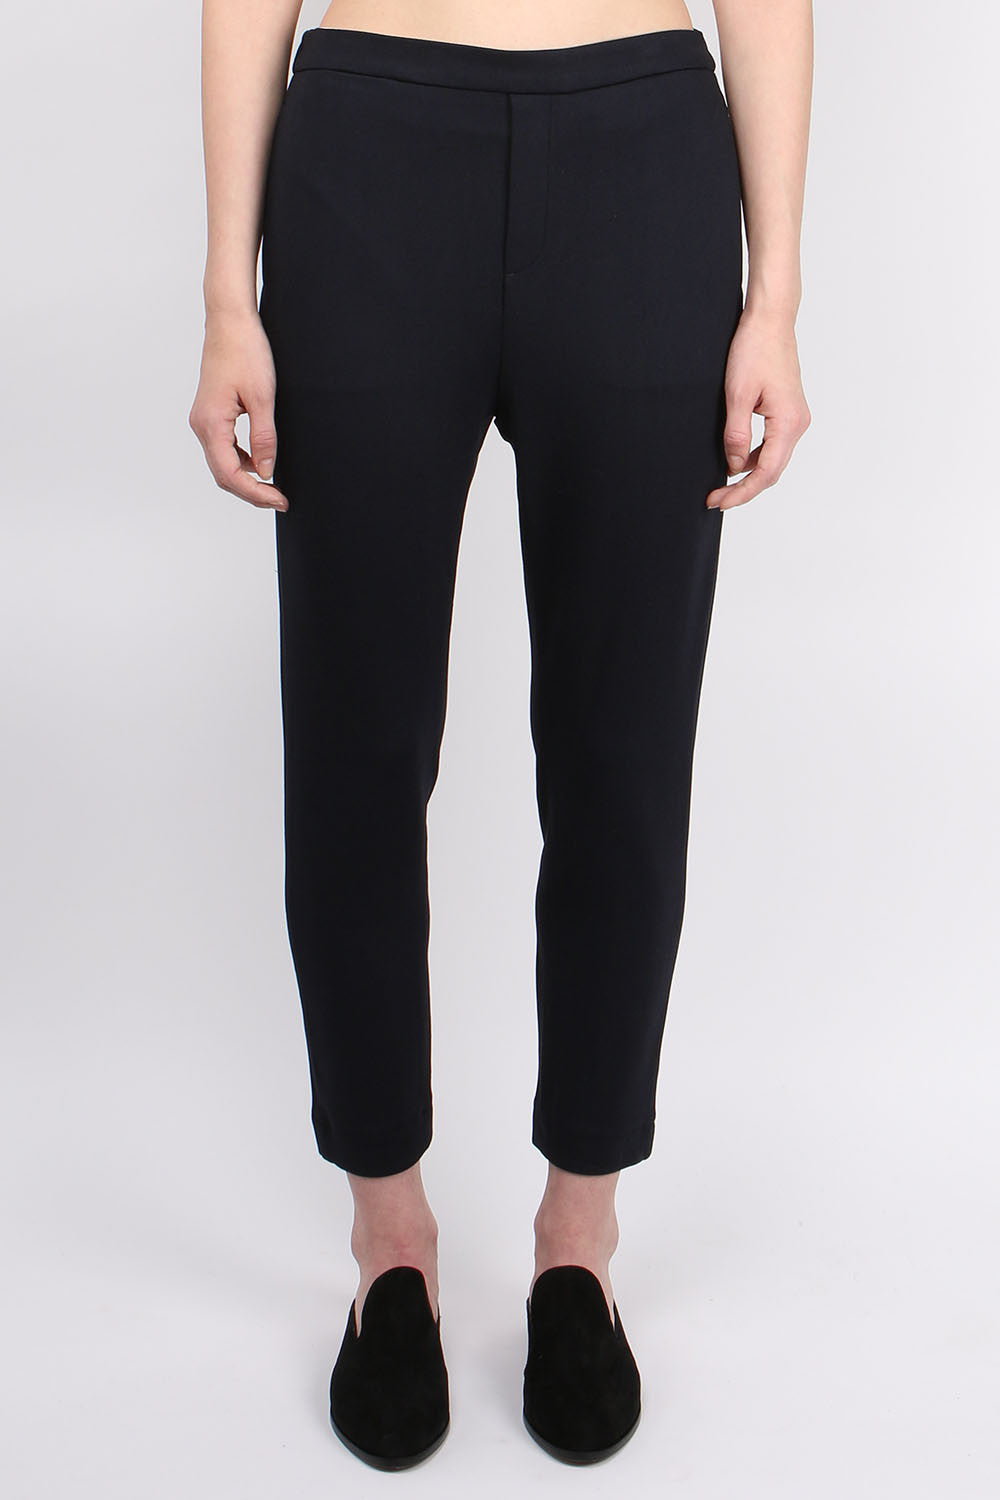 Sibel Saral Pullup Interlock Pant Navy